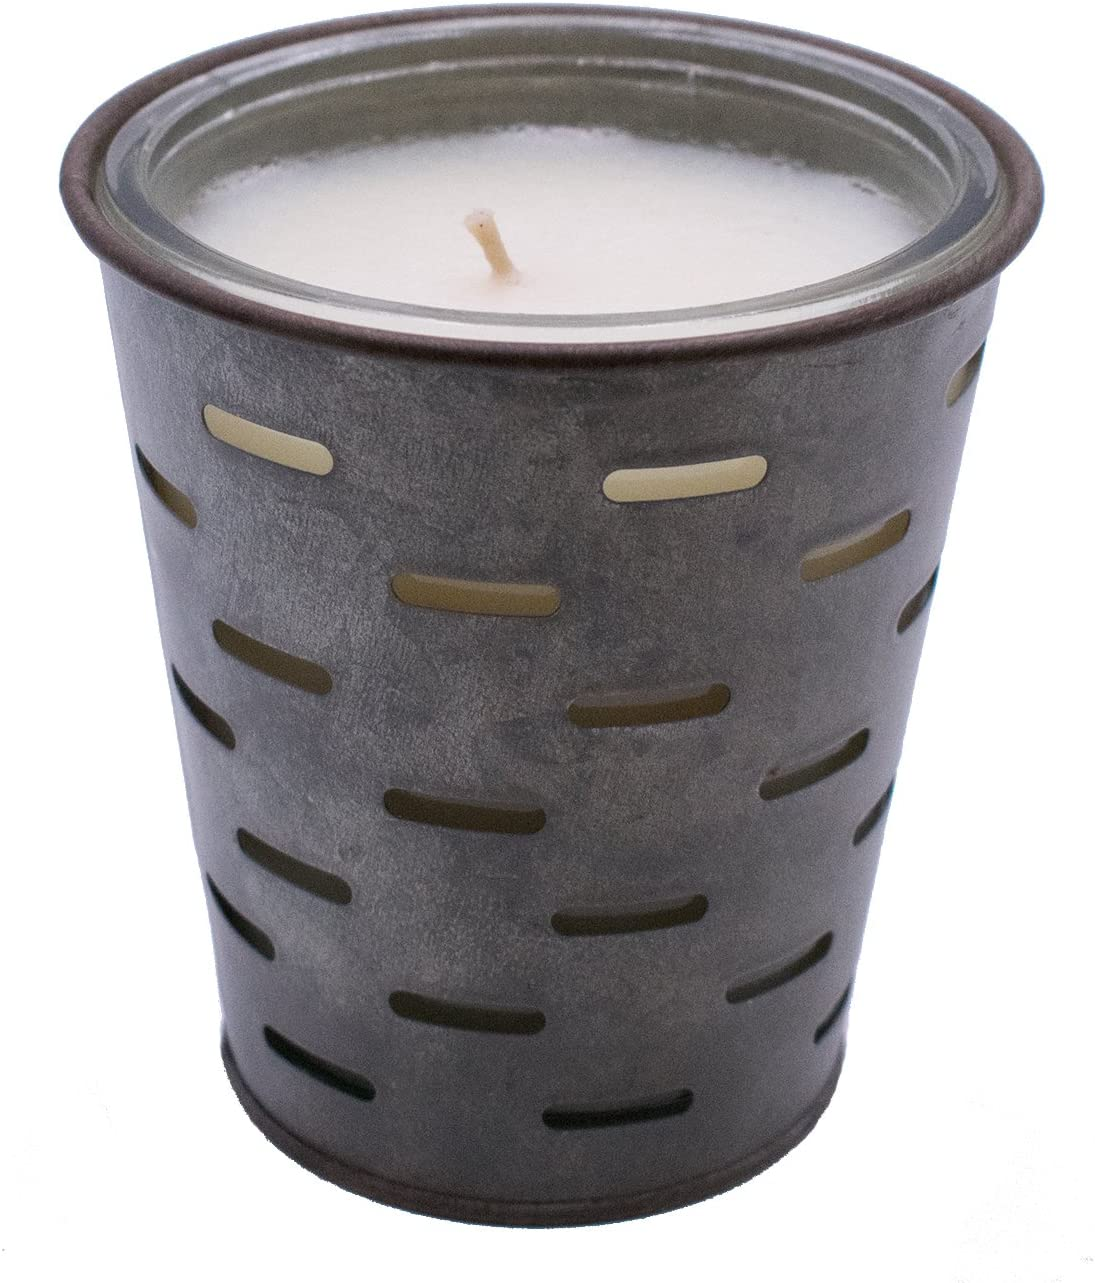 Red Co. Sweet Olive, Olive Bucket Fragrance Candle, Highly Scented, Glass Jar in Galvanized Tin Pot, 13oz